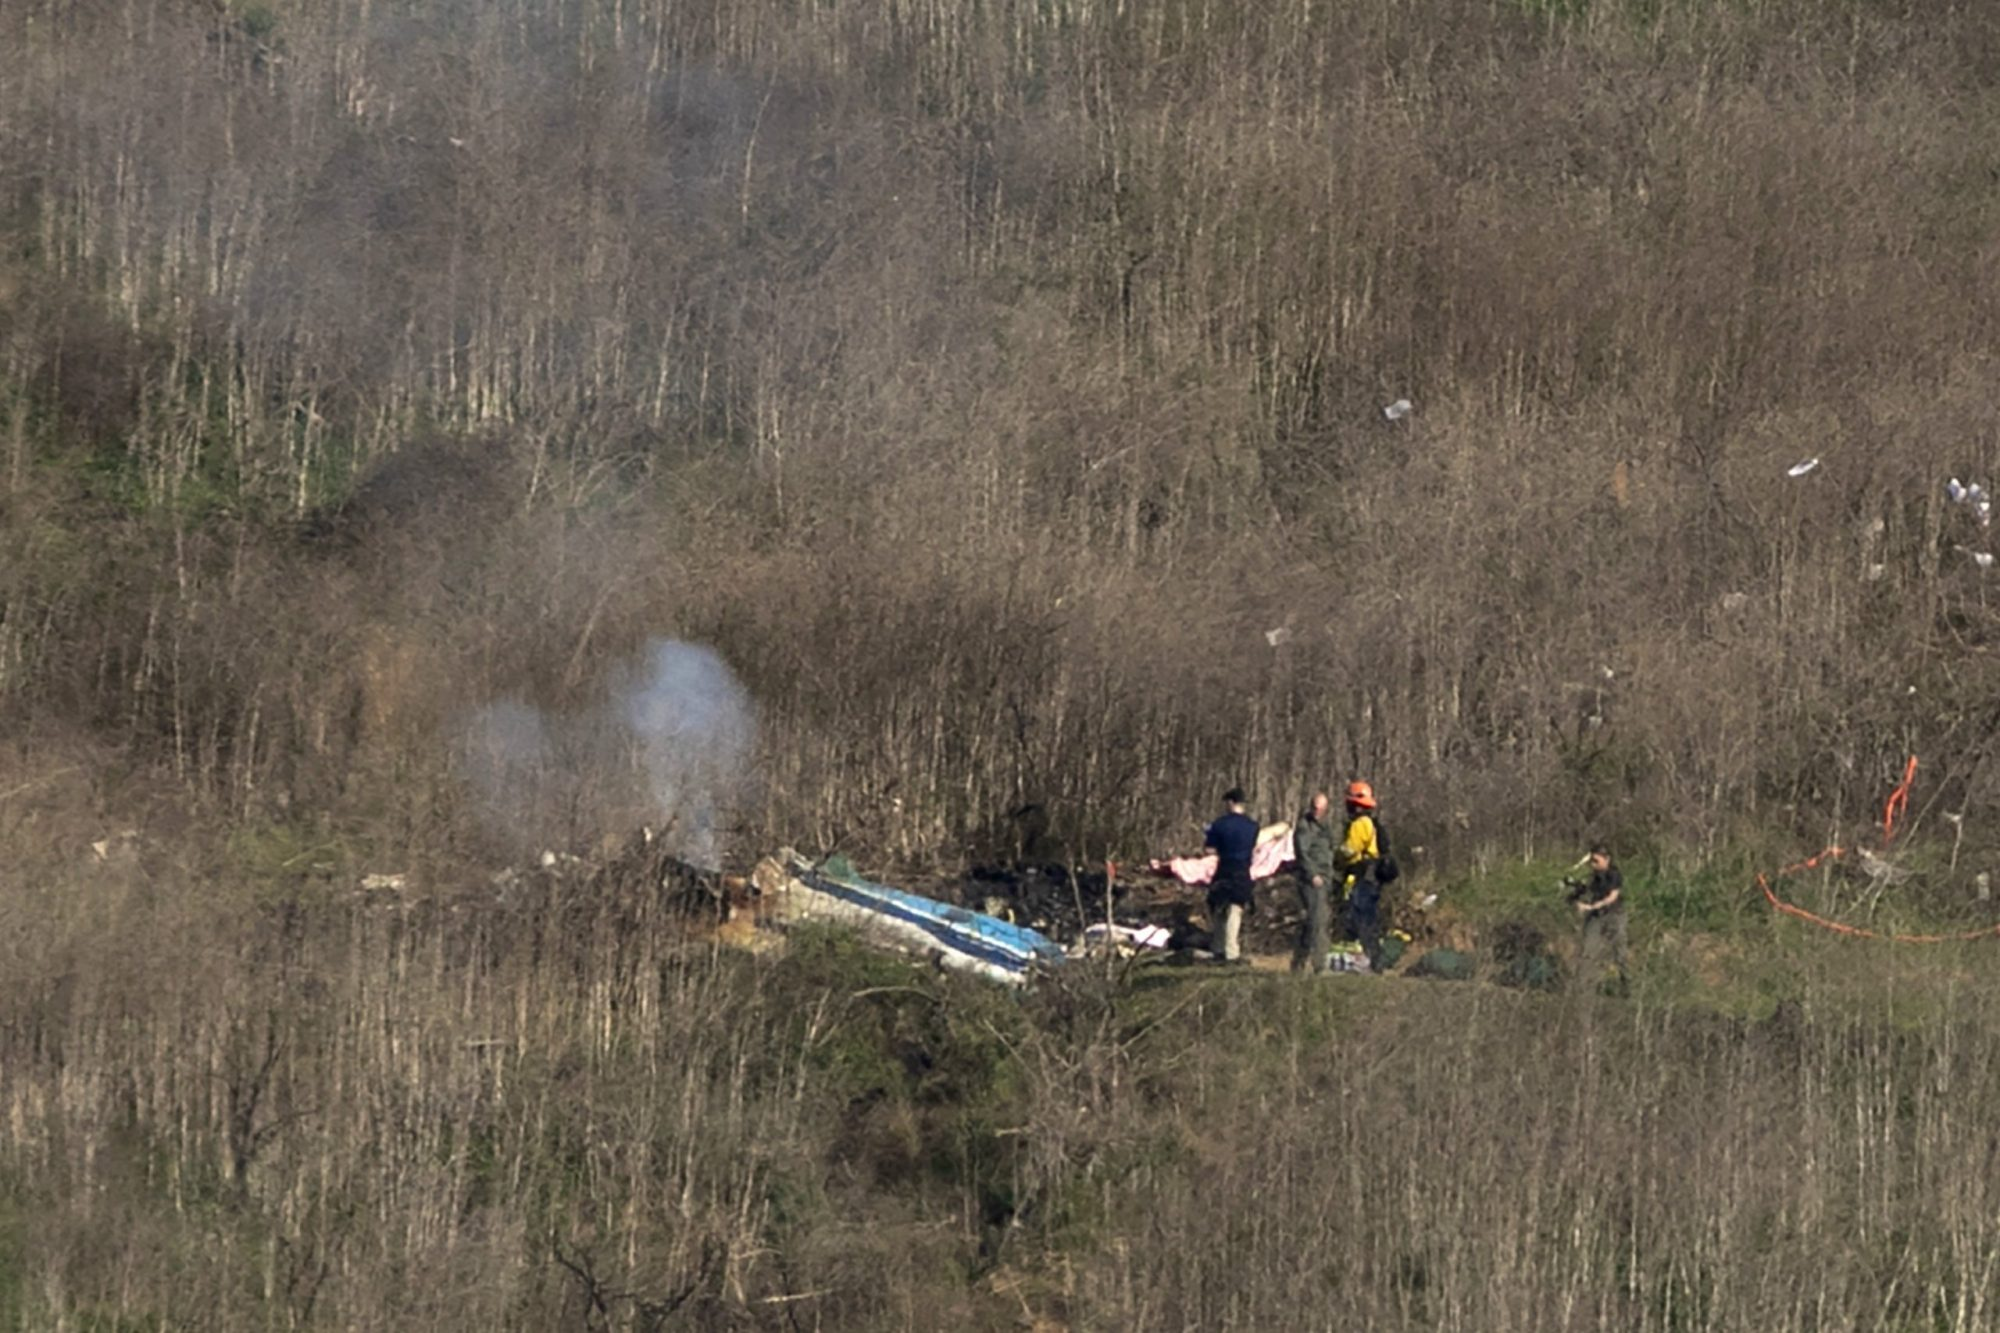 Investigators work at the scene of a helicopter crash that killed former NBA star Kobe Bryant on Jan. 26, 2020, in Calabasas. (Credit: David McNew/Getty Images)